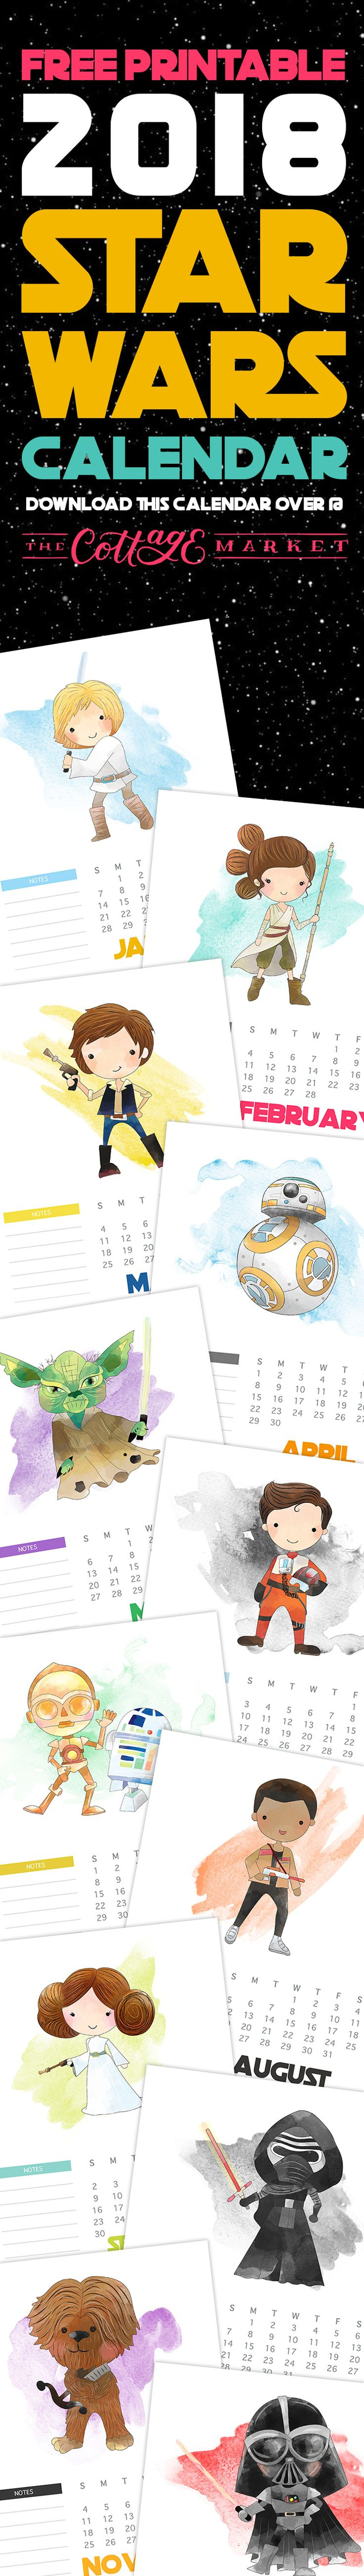 Free printable 2018 Star Wars calendar